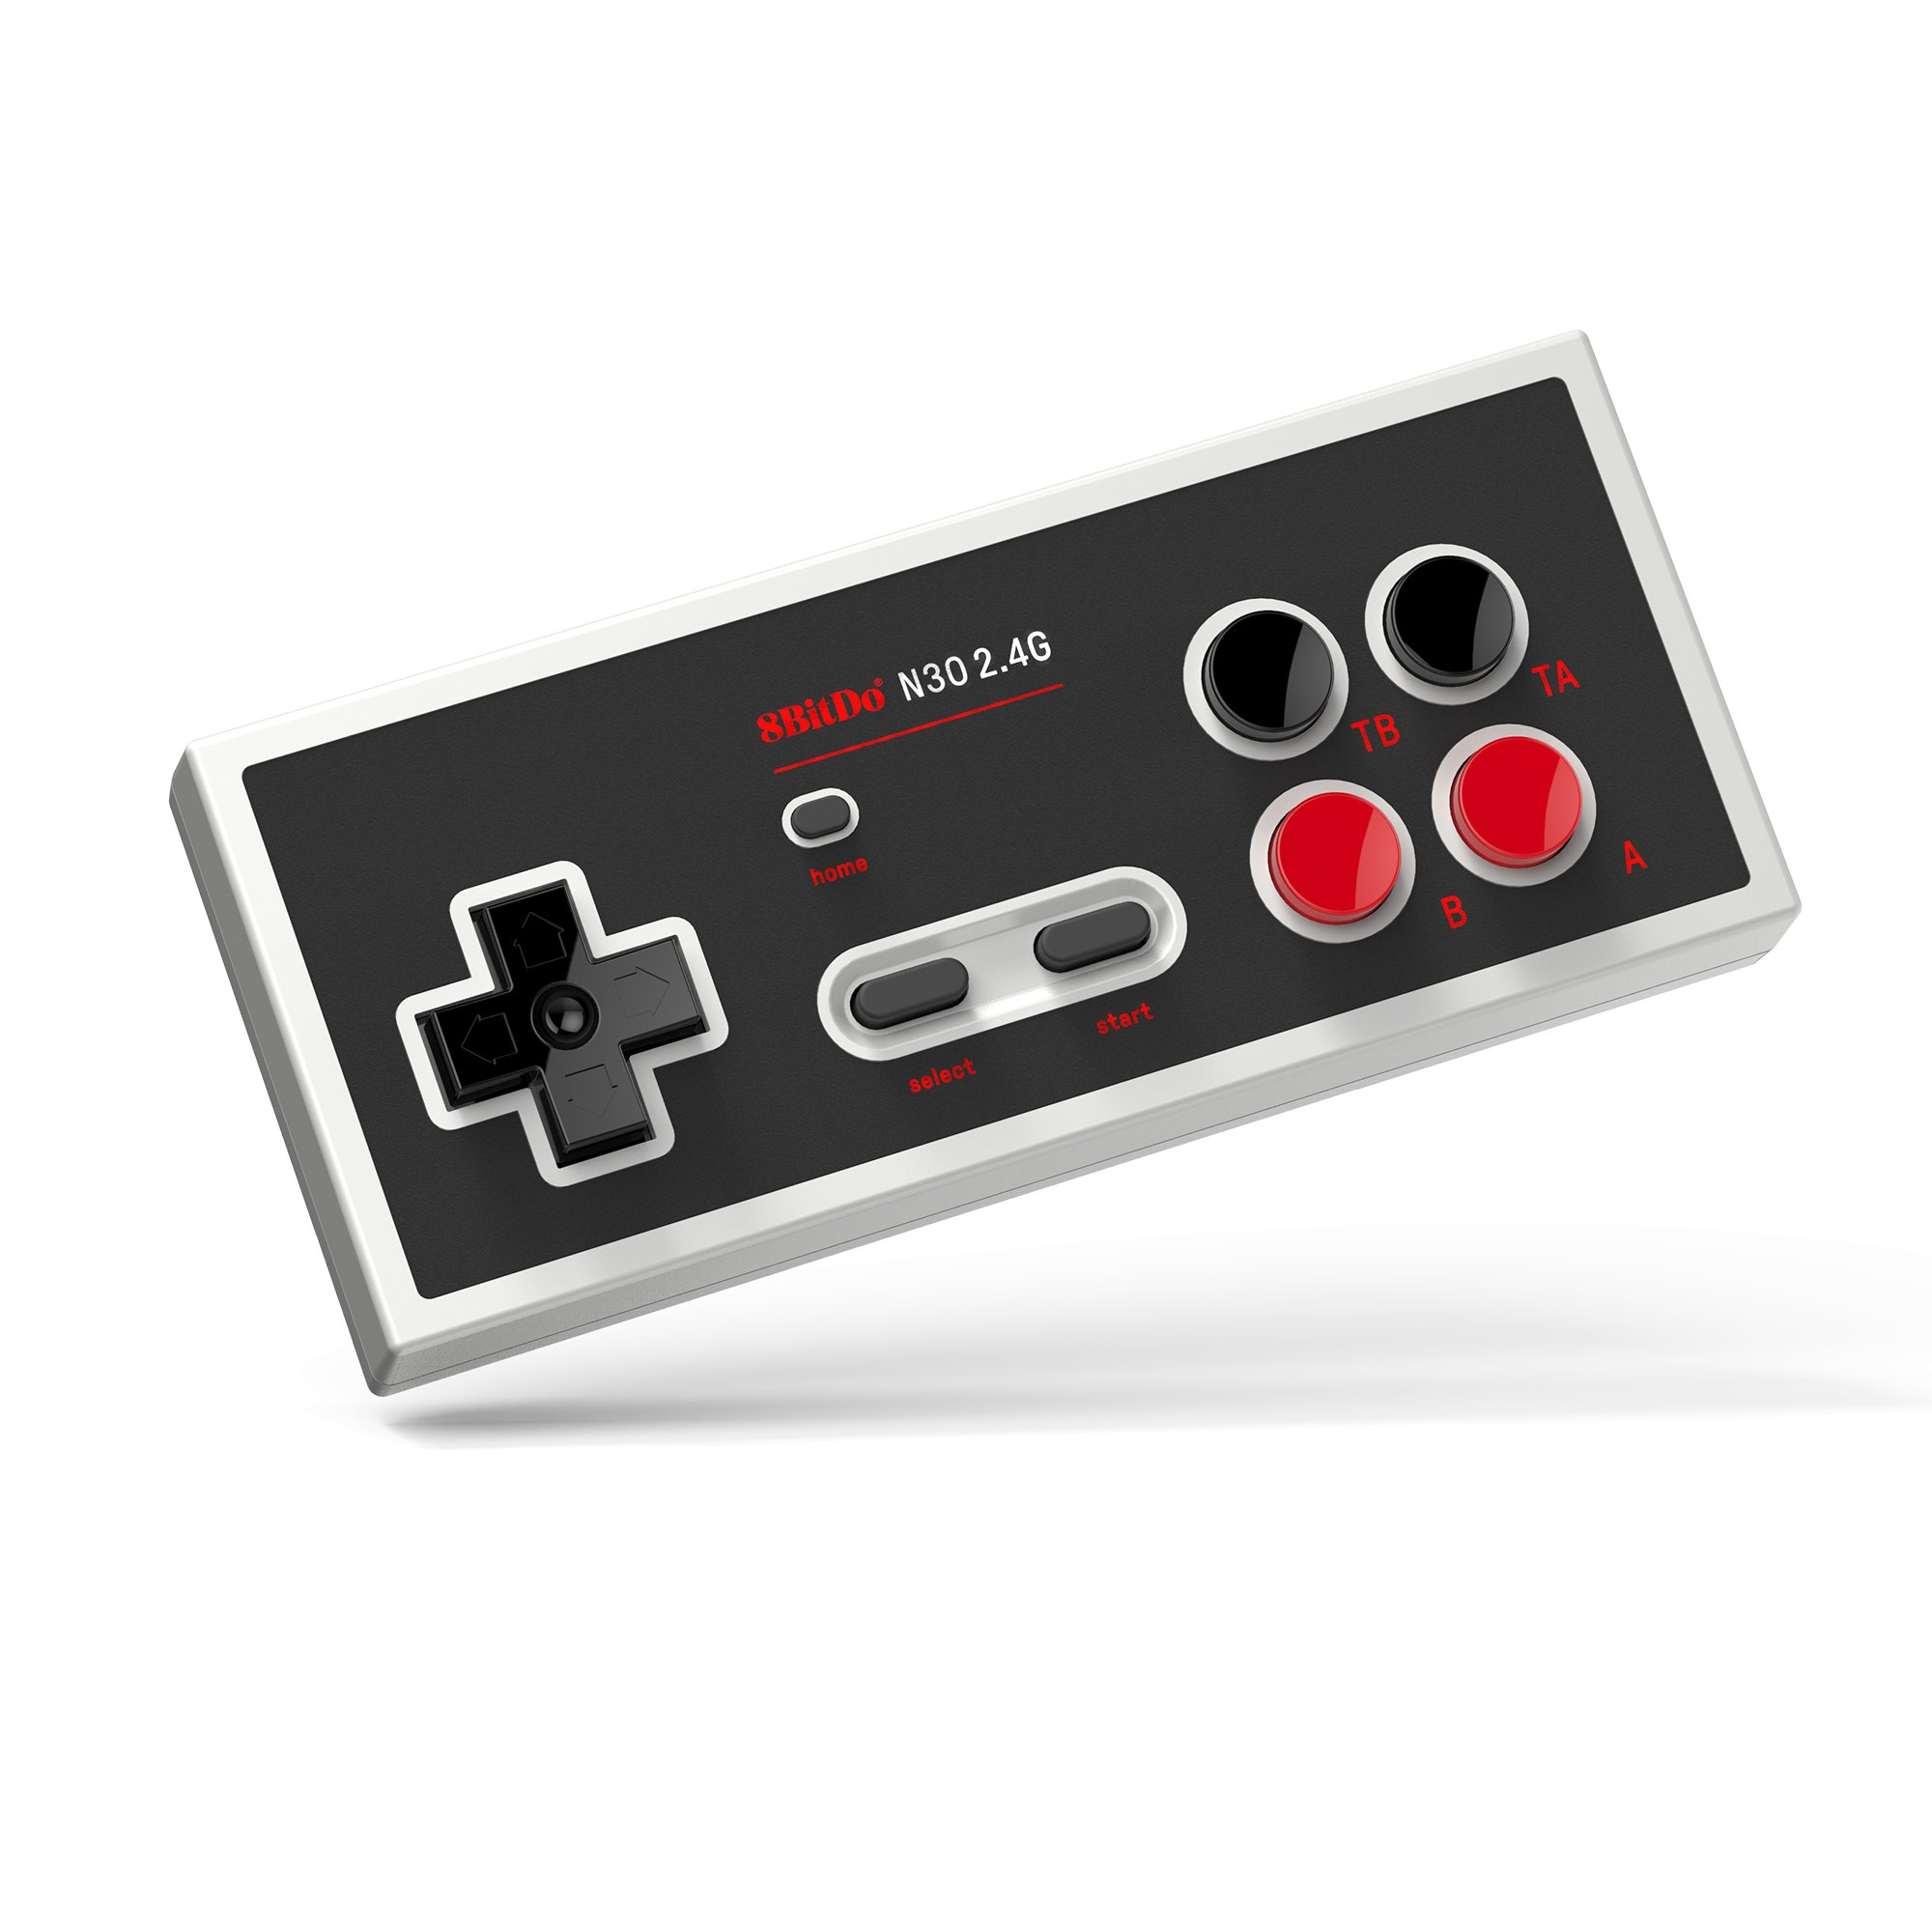 8Bitdo N30 2.4G Wireless Gamepad for NES Classic Edition - NES